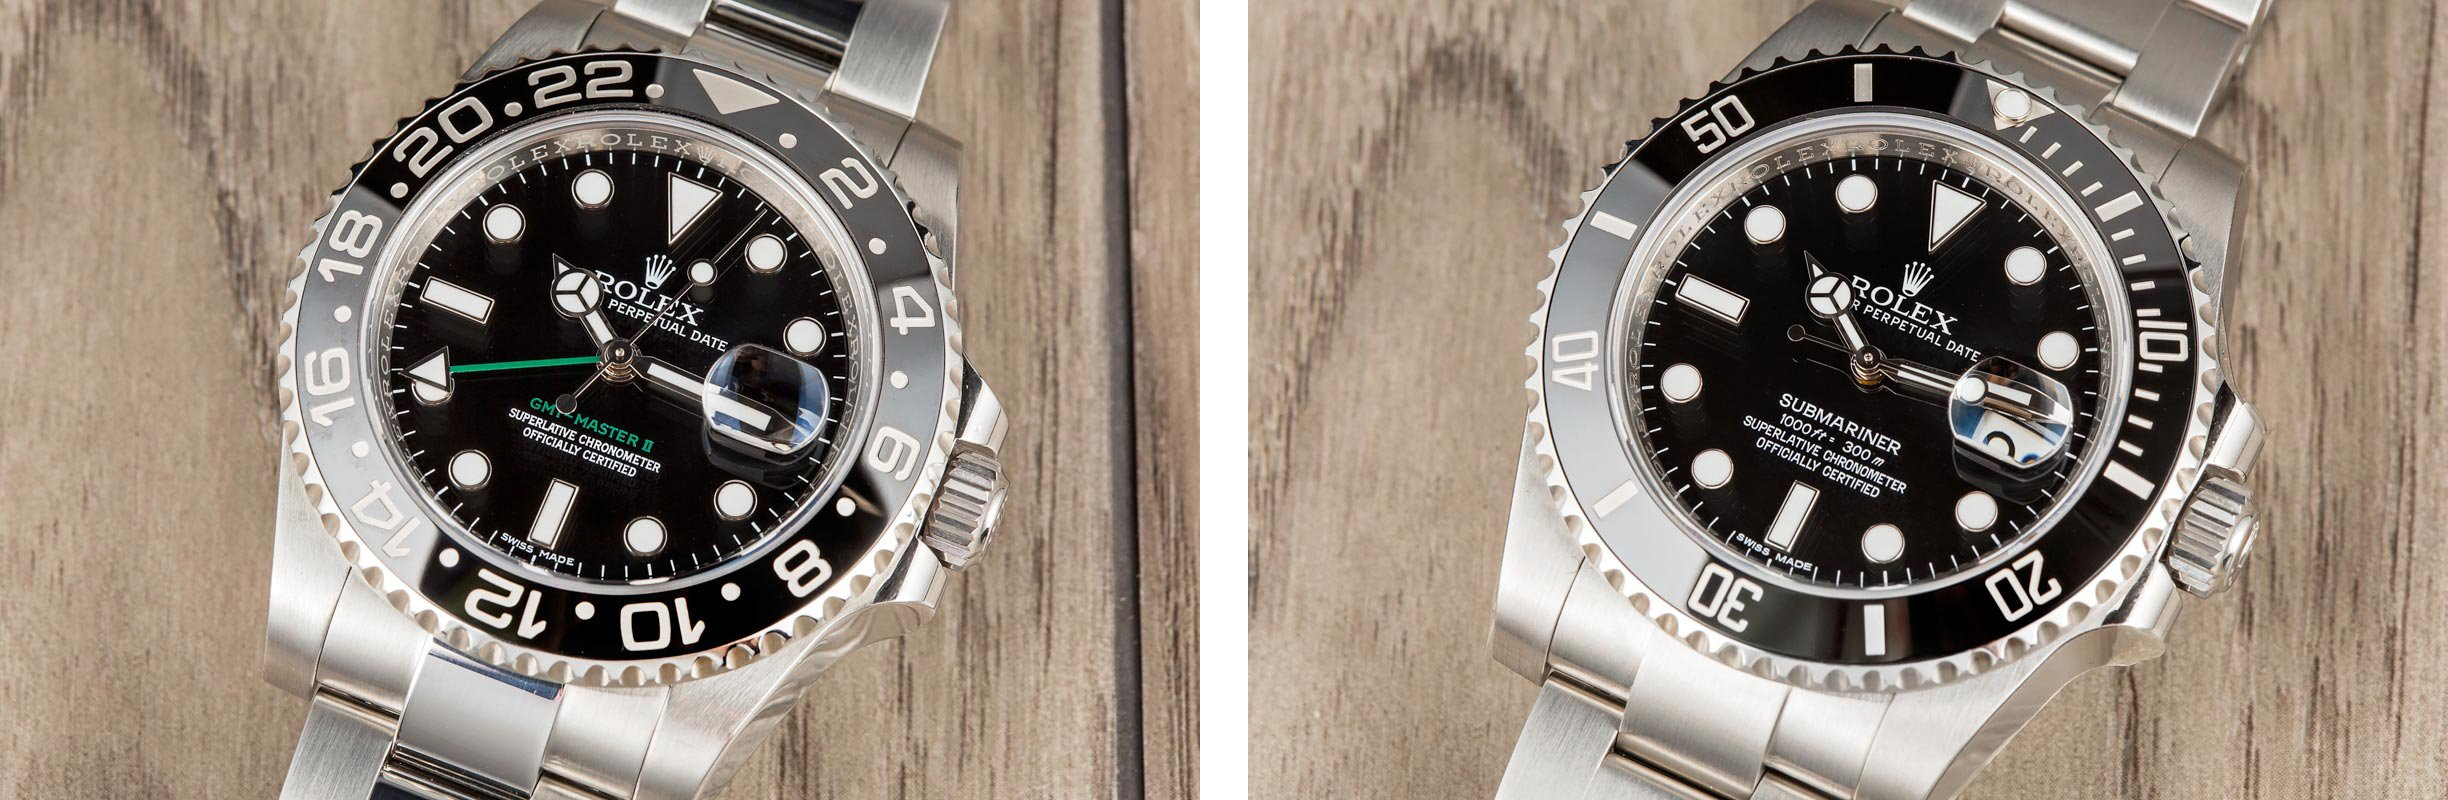 Submariner GMT Master comparison